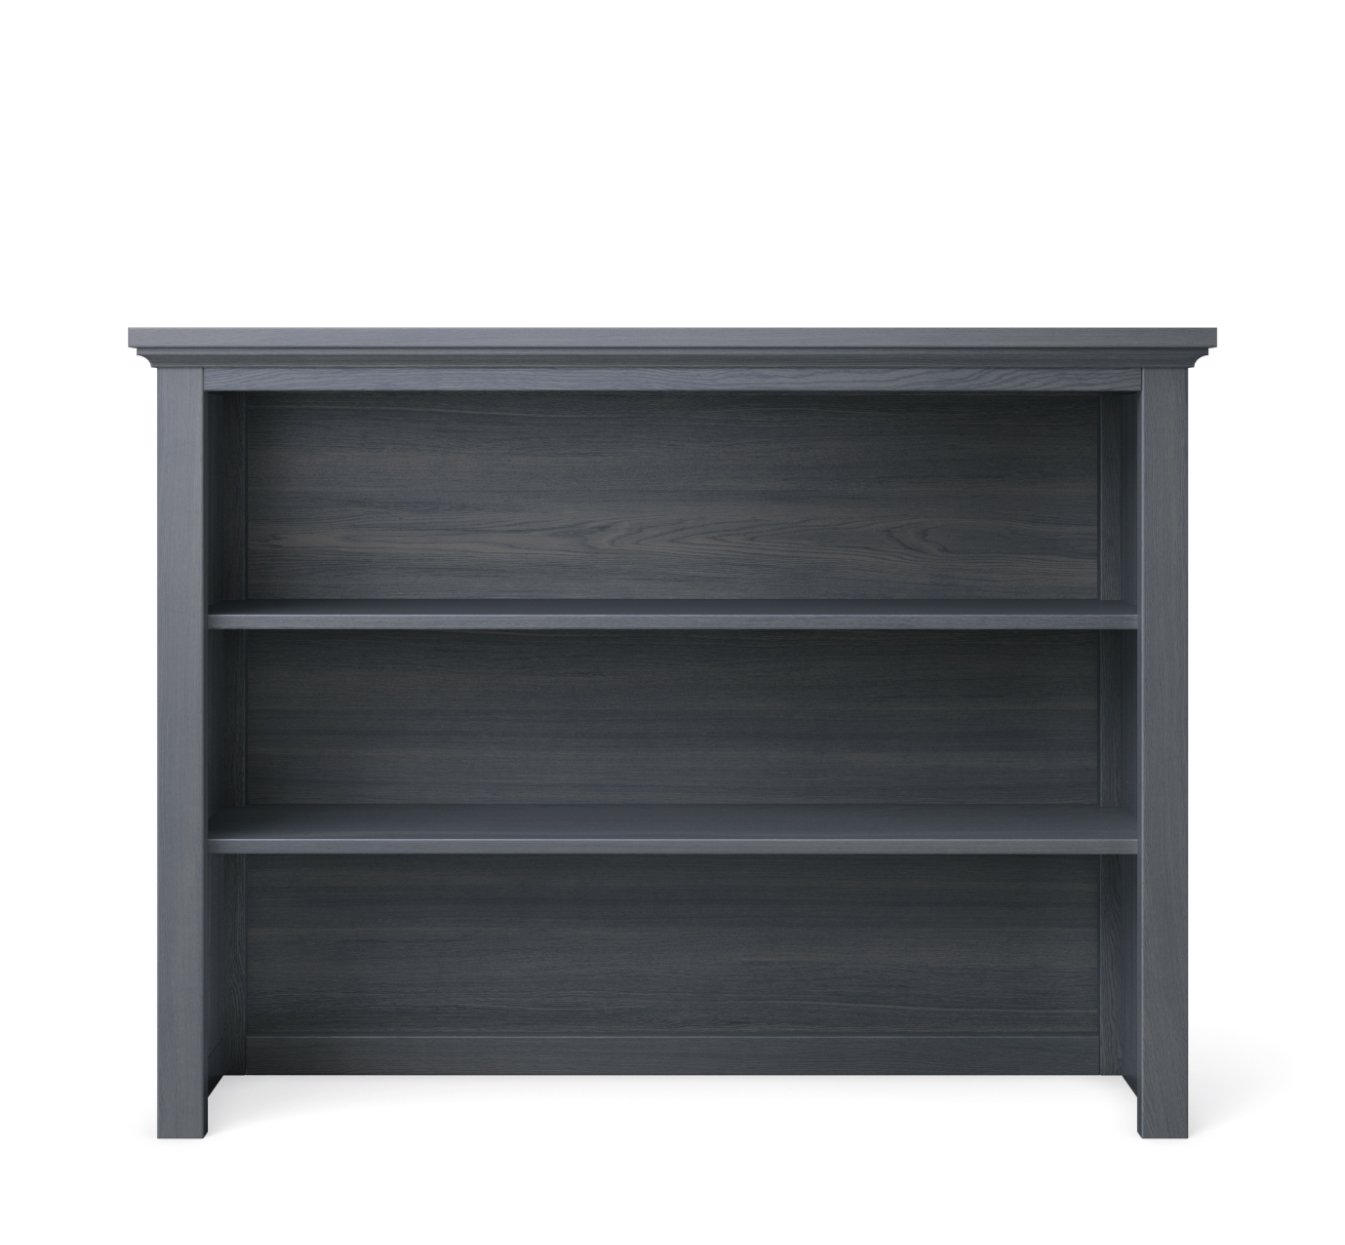 Silva Furniture Hutch in Storm